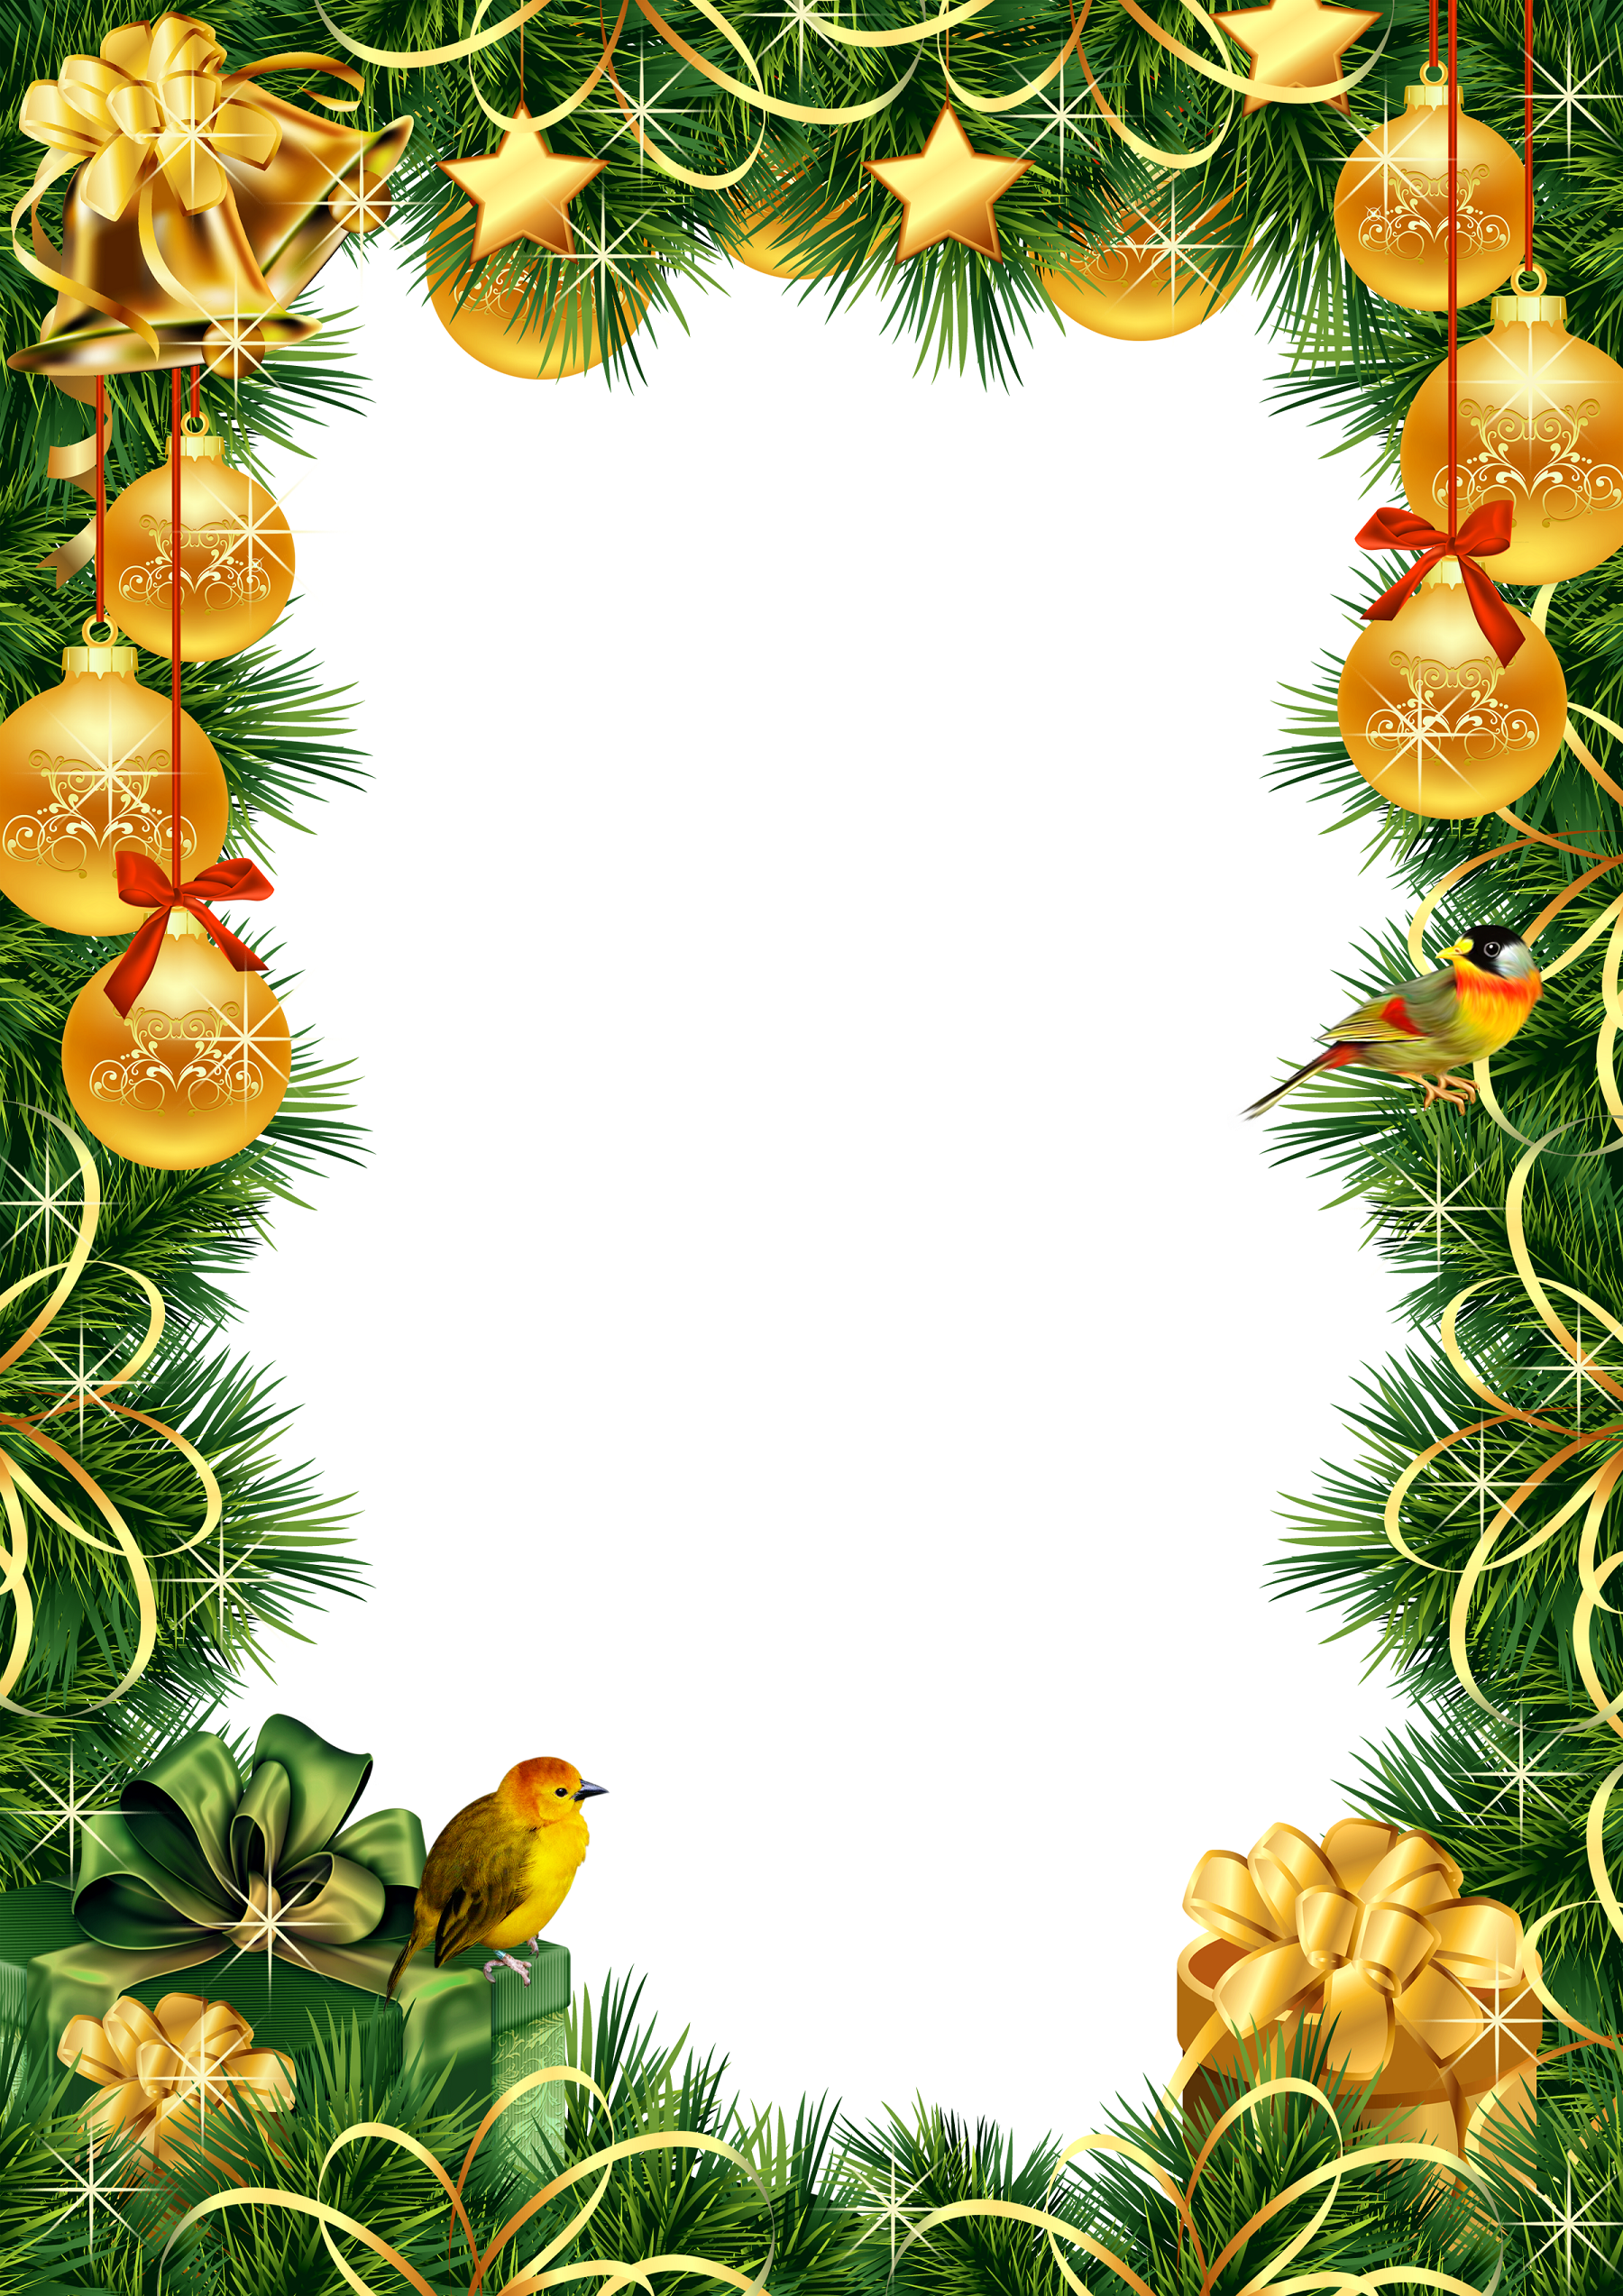 Vintage holiday border clipart clip freeuse library Christmas photo frame with ornaments and pine | Clip Art Holiday ... clip freeuse library